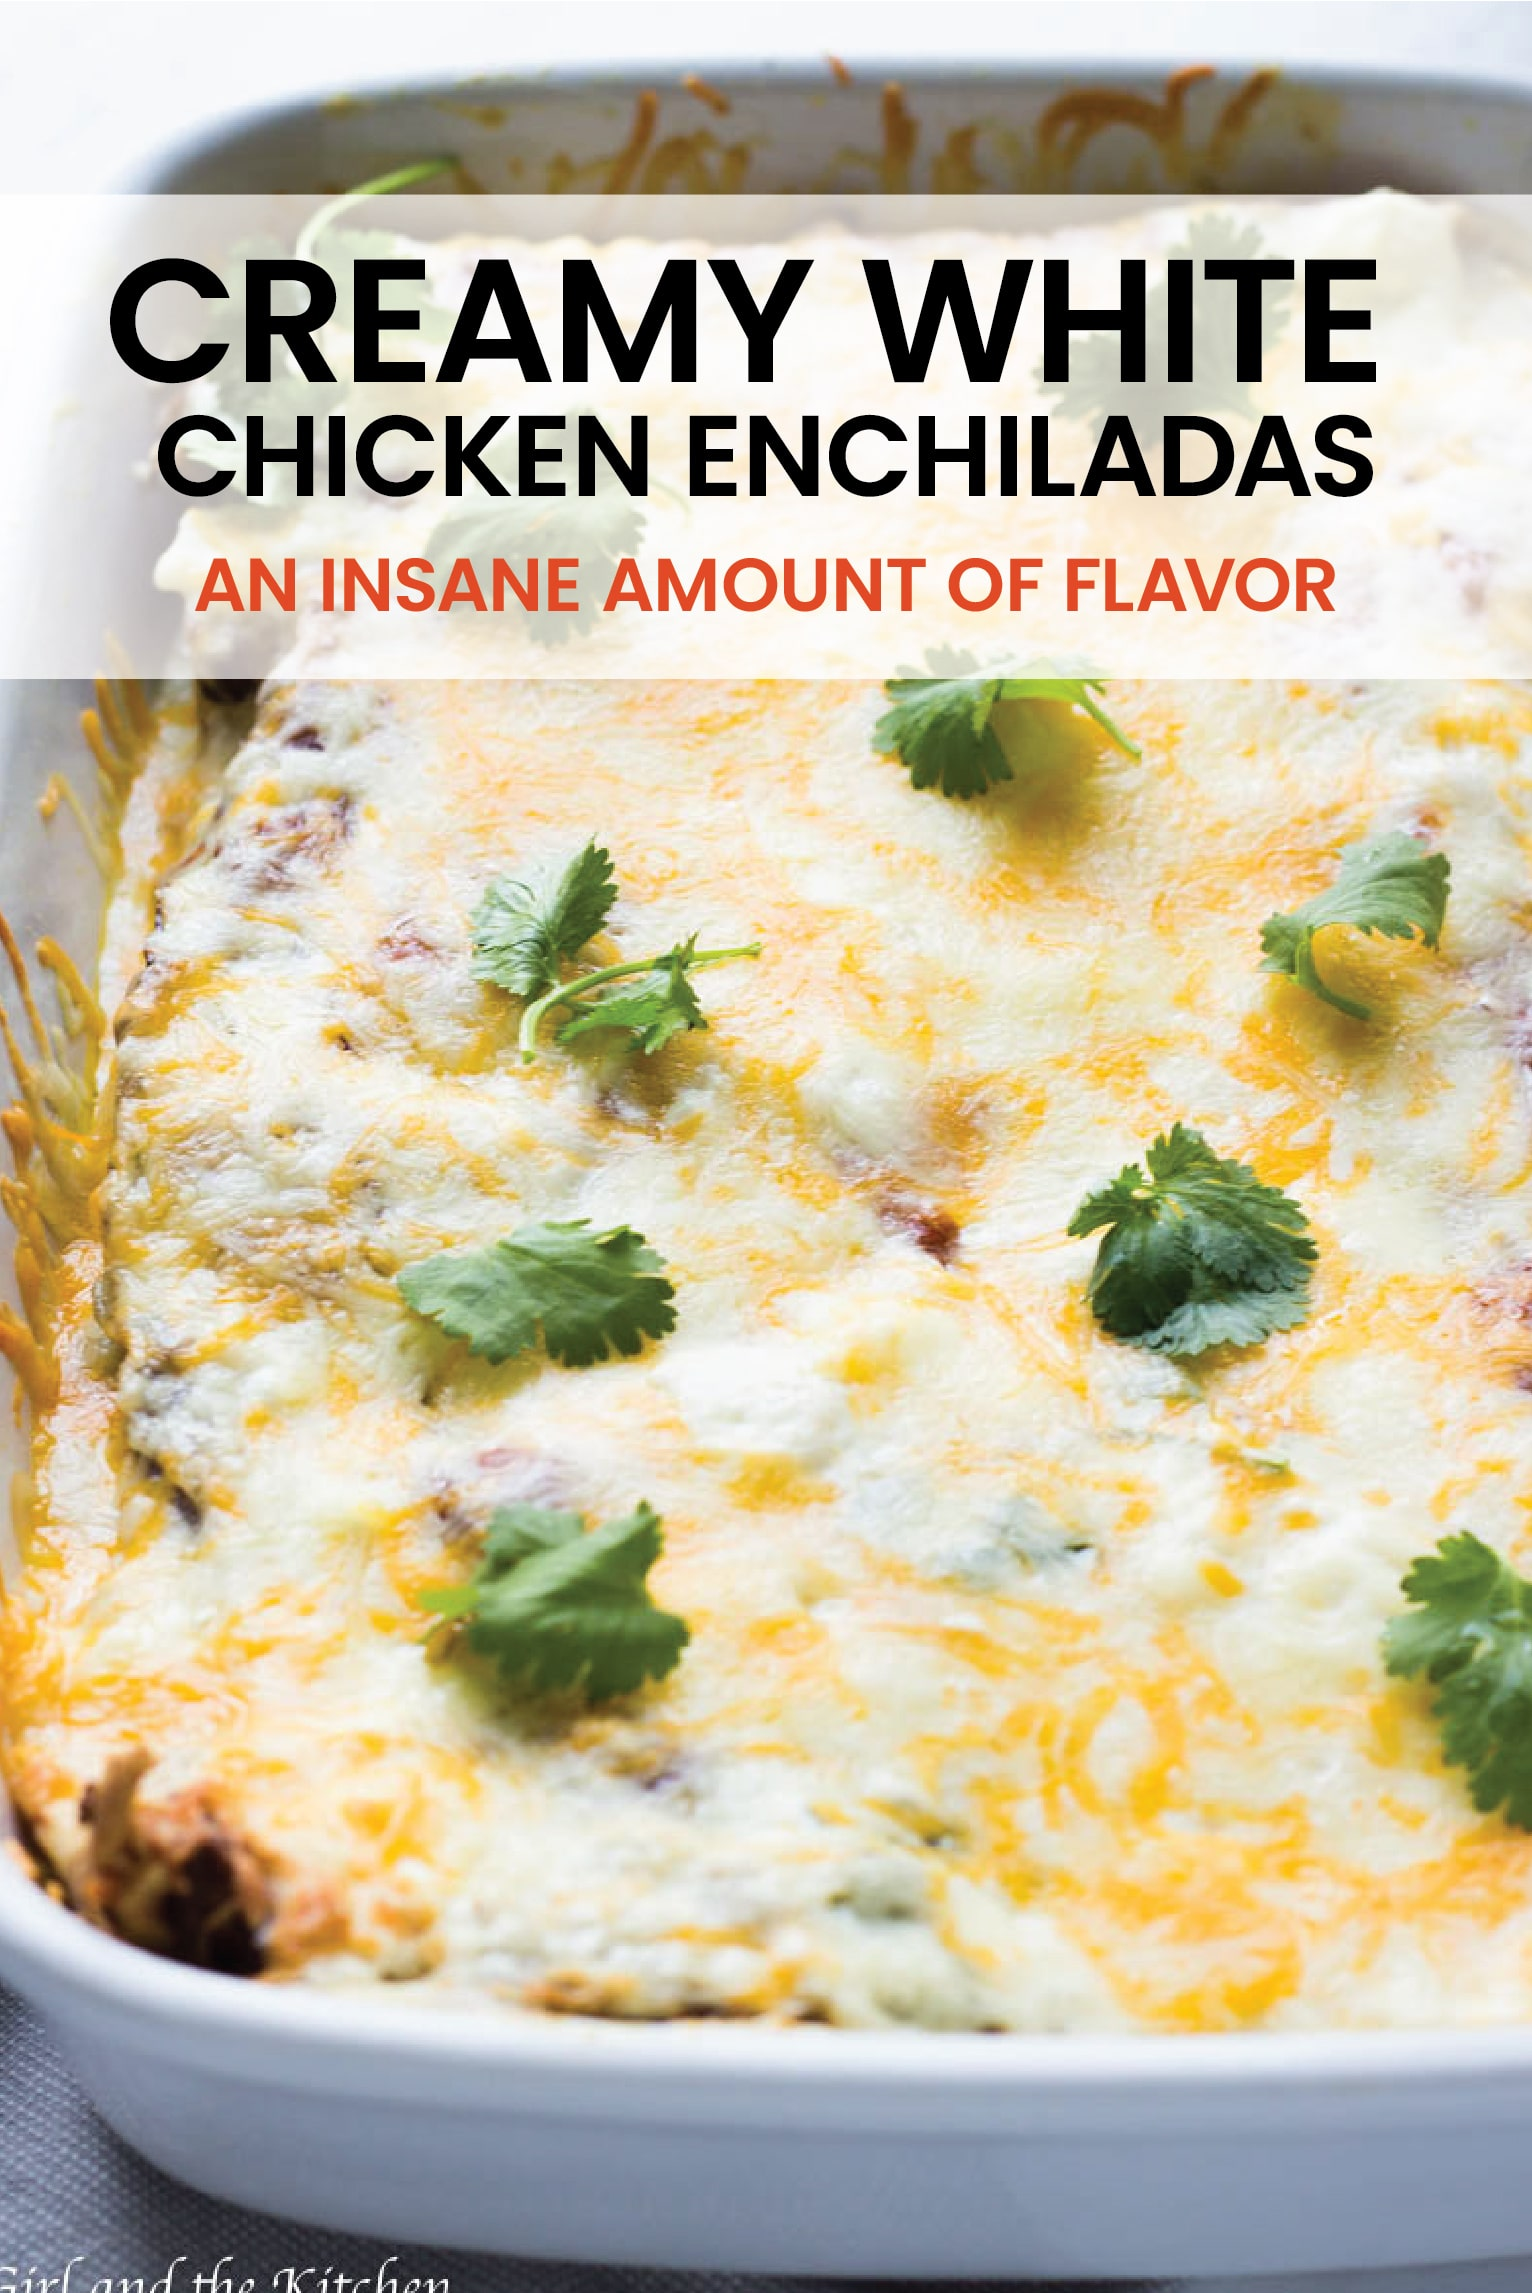 These Creamy White Chicken Enchiladas are beyond simple to make but boast an insane amount of flavor!